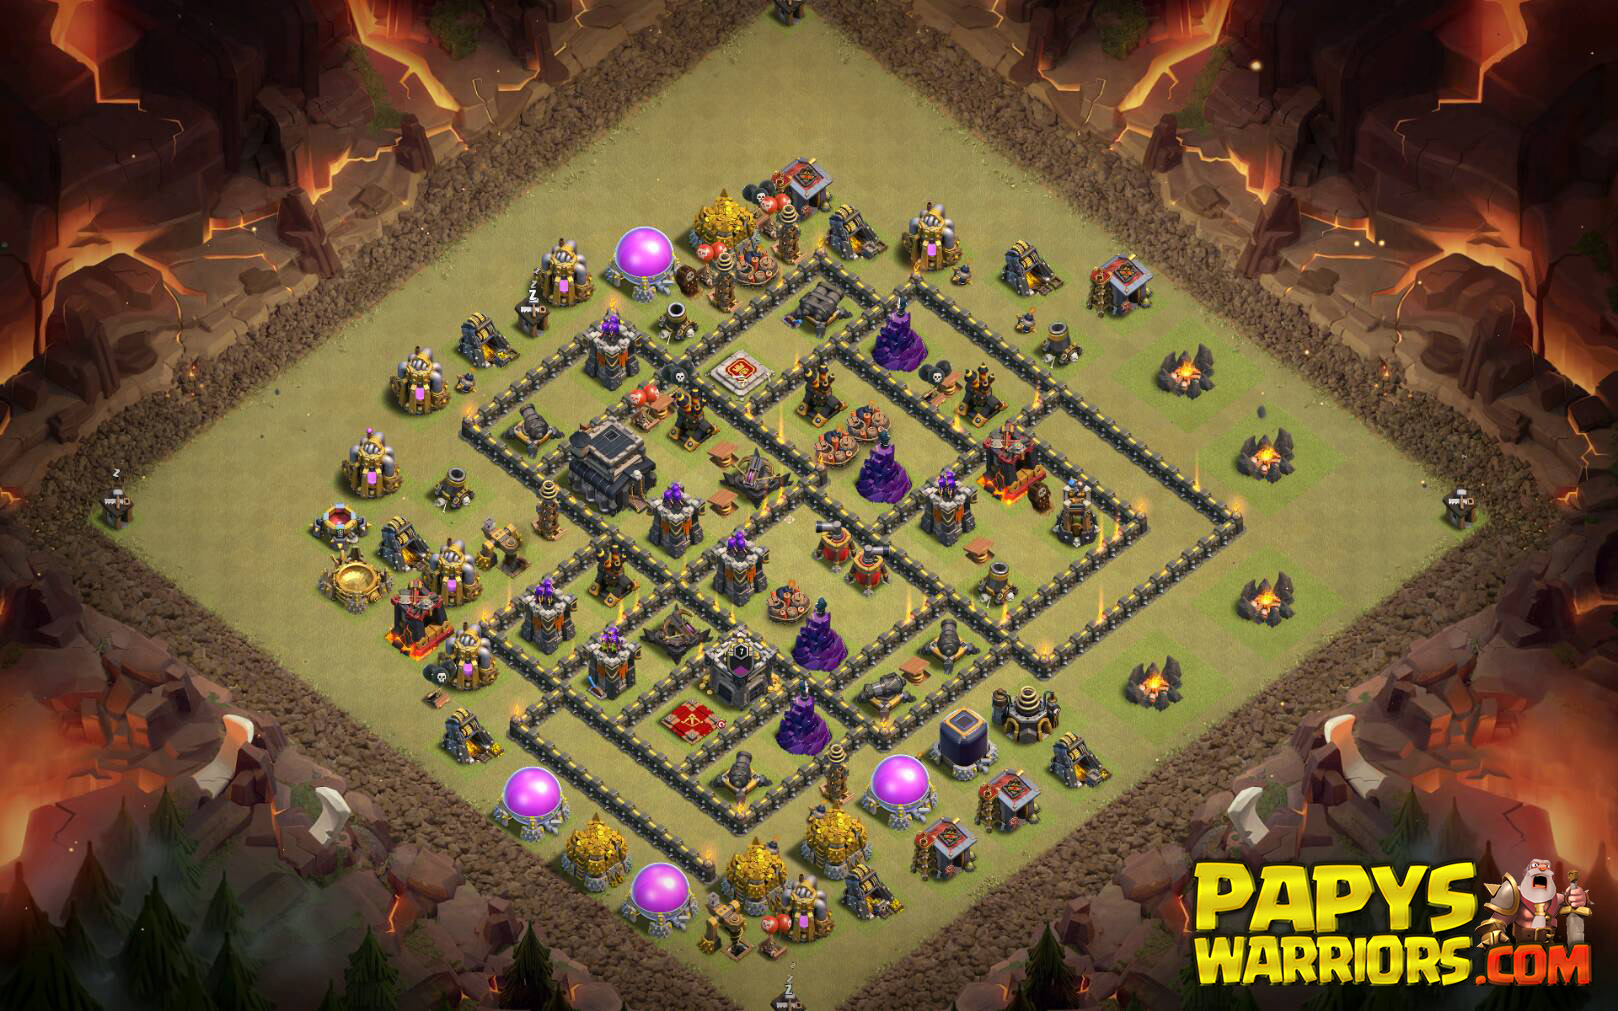 WAR BASE TH9 PAPYS WARRIORS 1